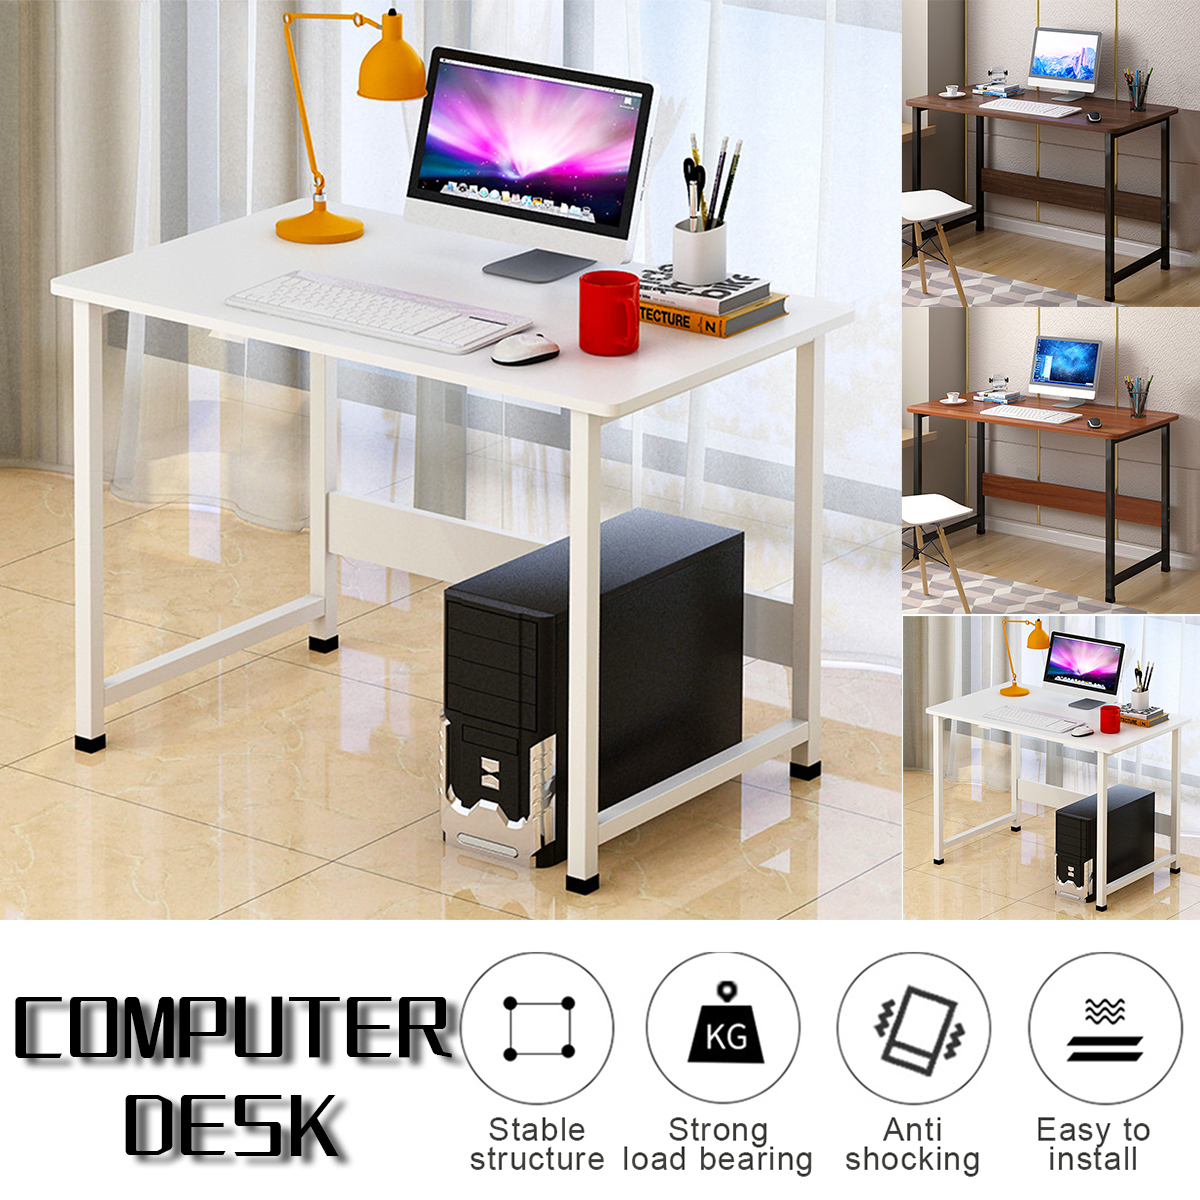 Details about US Wooden Computer Laptop Table Study Desk Home Office  Furniture PC Workstation